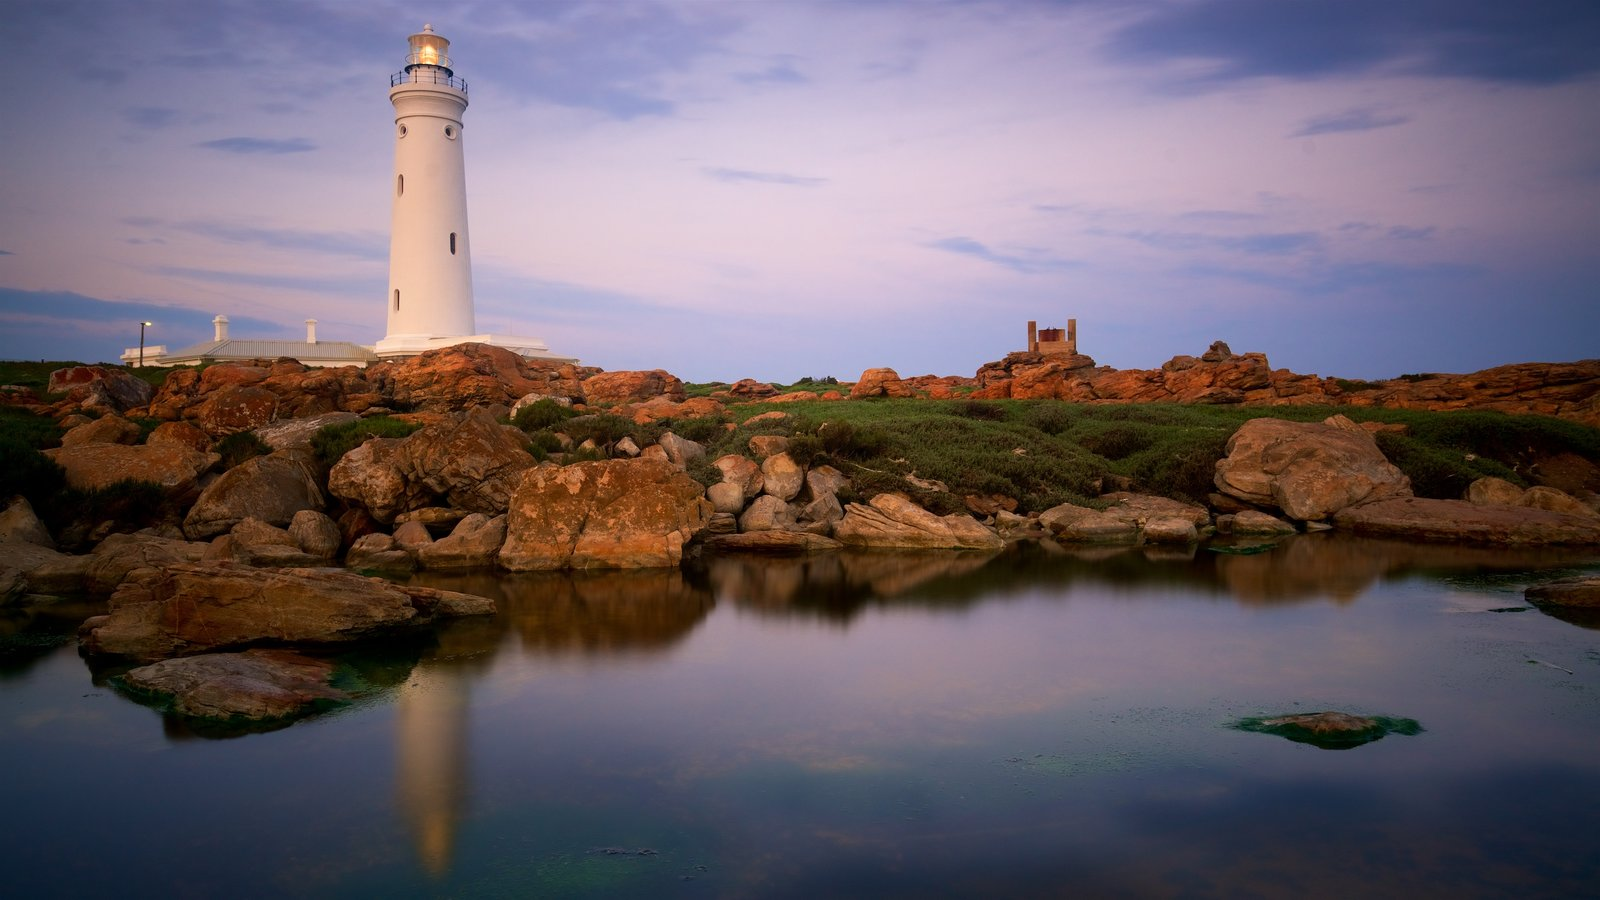 Seal Point Lighthouse featuring a sunset, general coastal views and rocky coastline